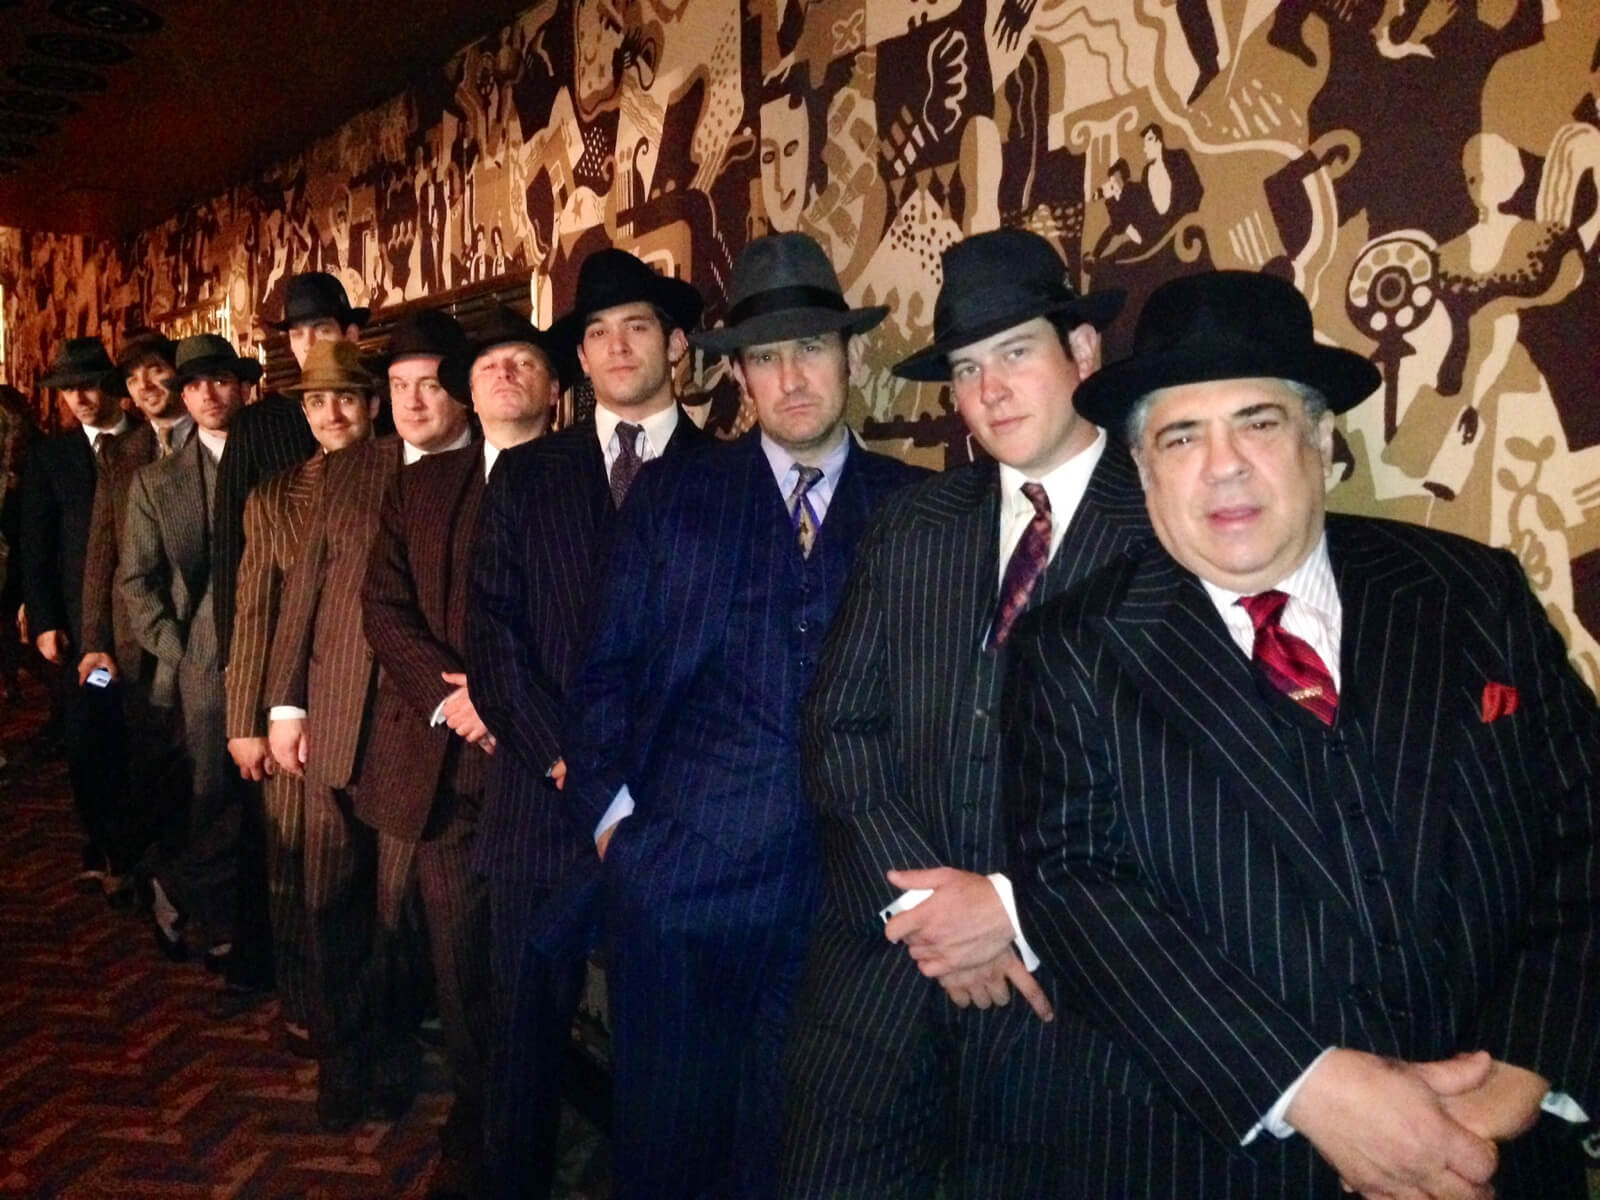 A row of 11 gangsters in pinstripe suits and hats lined up against a wall at Radio City Music Hall.